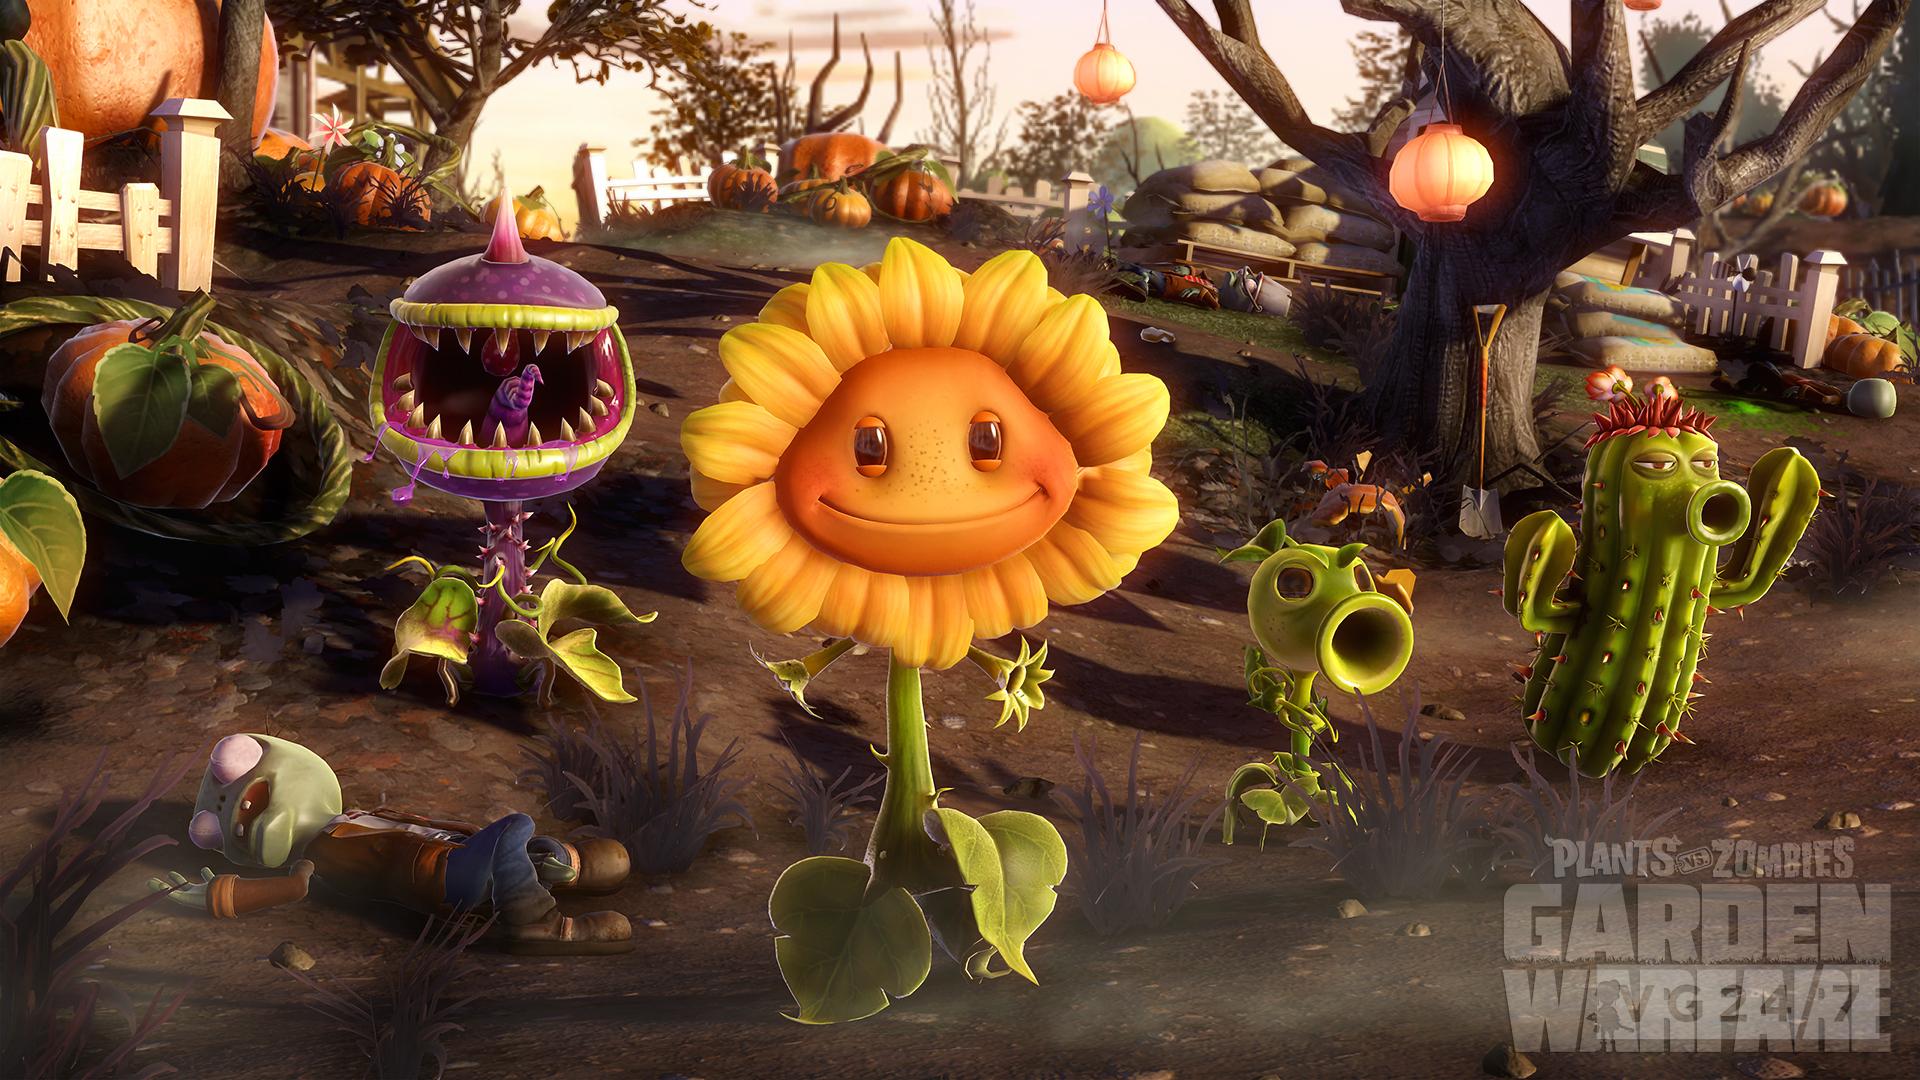 Plants vs zombies garden warfare coming first to xbox one - Plants vs zombies garden warfare xbox one ...